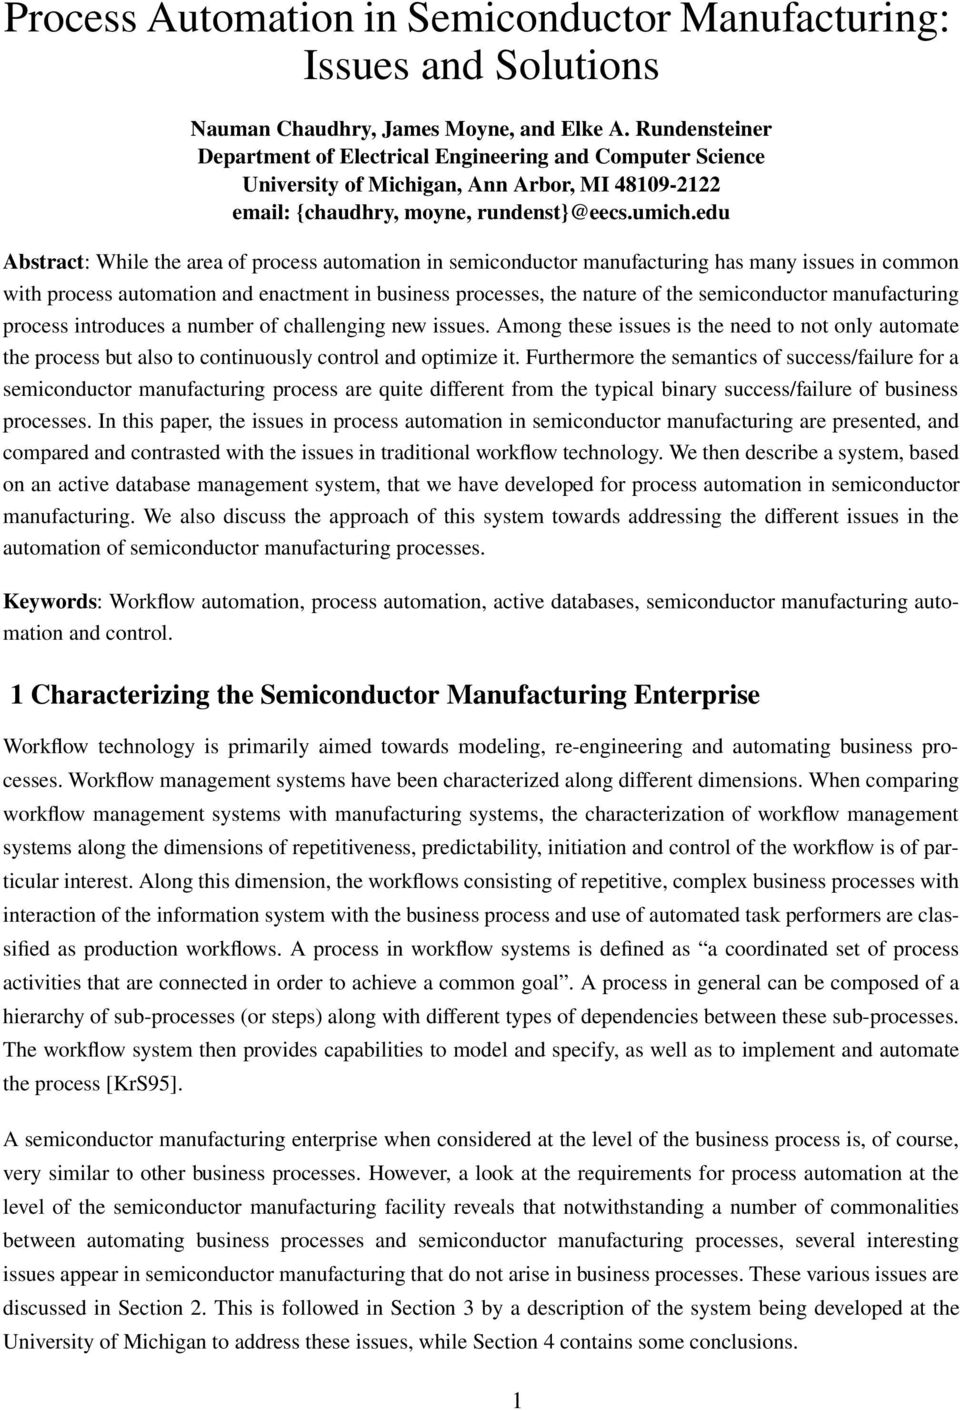 edu Abstract: While the area of process automation in semiconductor manufacturing has many issues in common with process automation and enactment in business processes, the nature of the